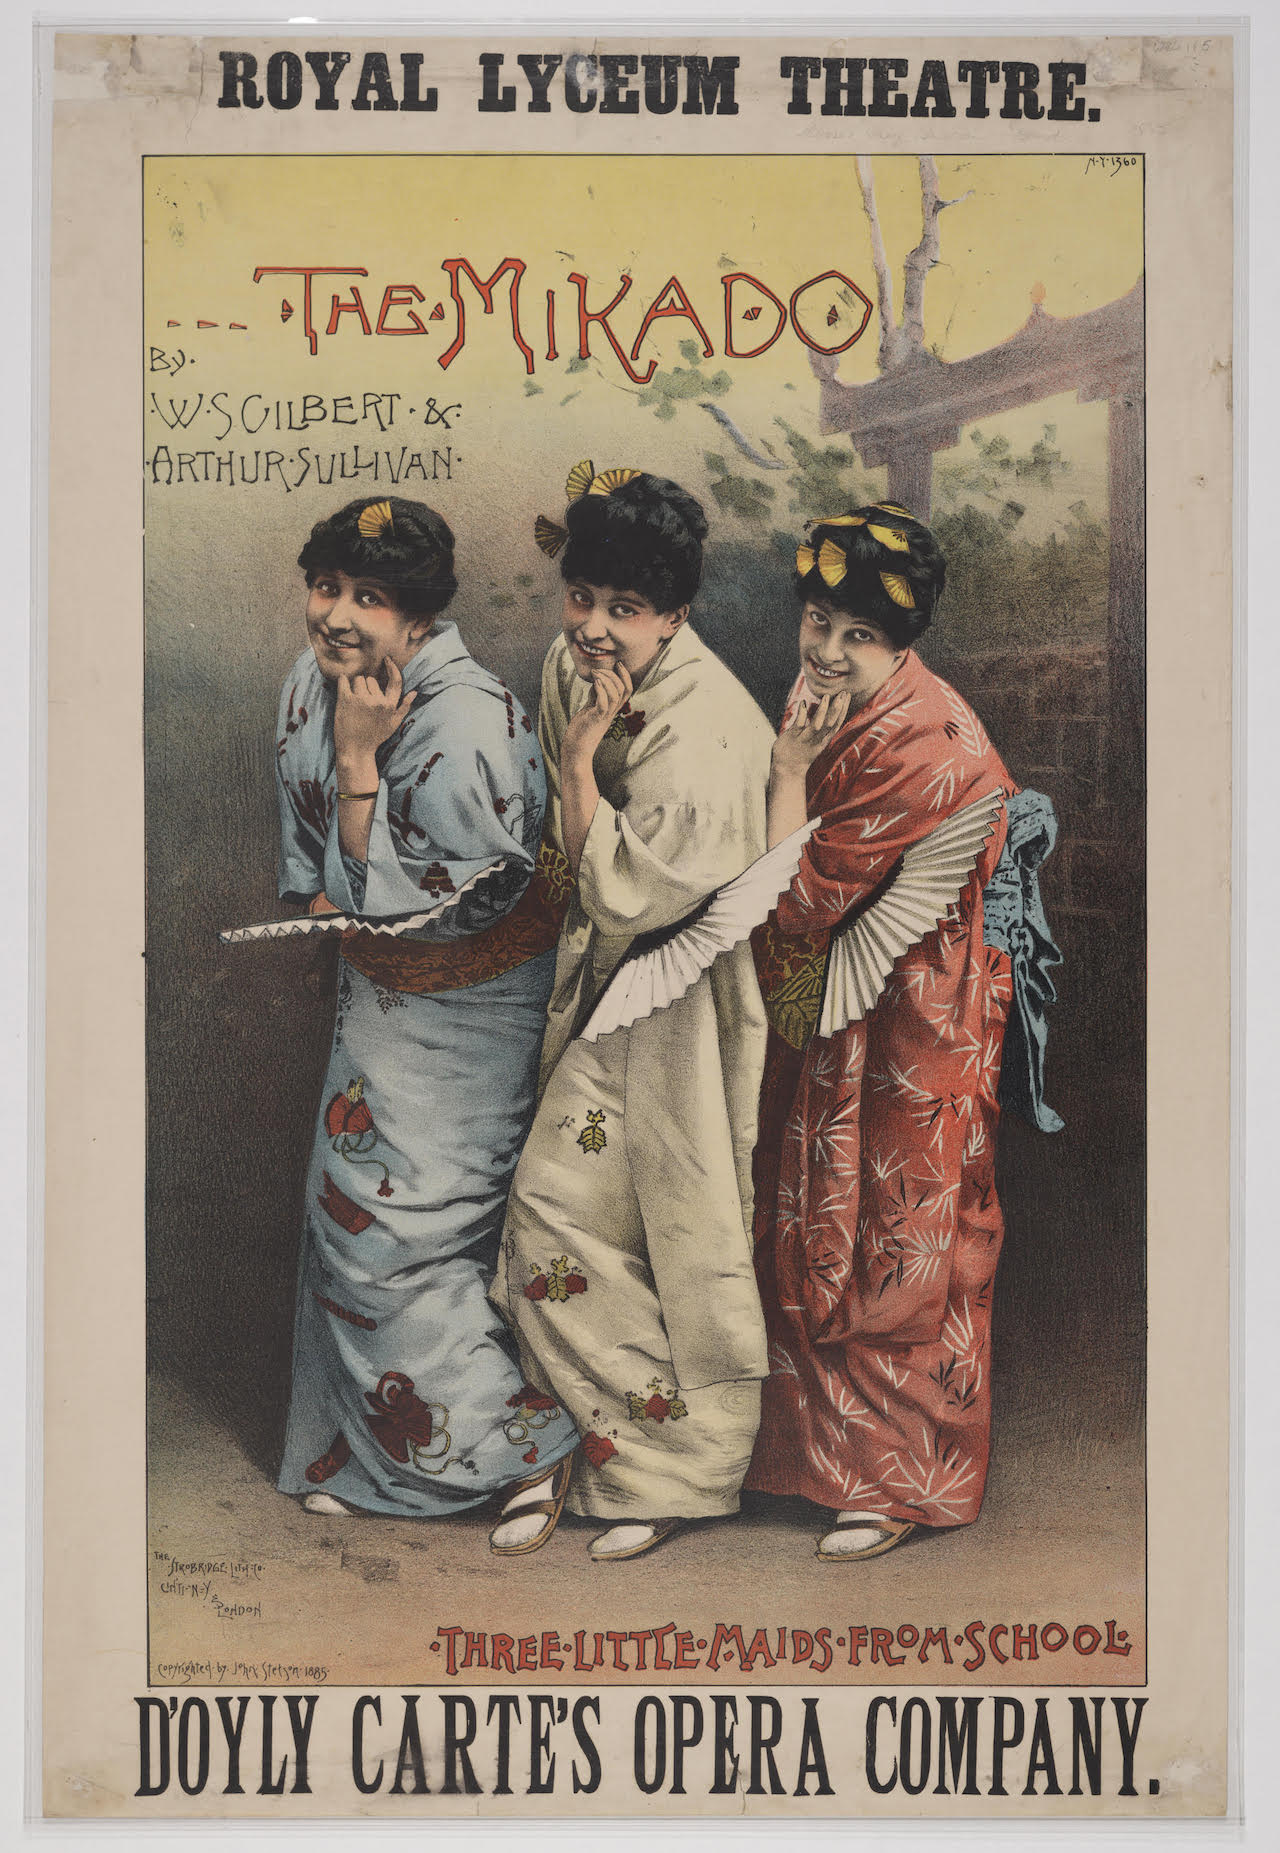 A flyer for an 1885 production of 'The Mikado' in Edinburgh (image via Wikimedia Commons)